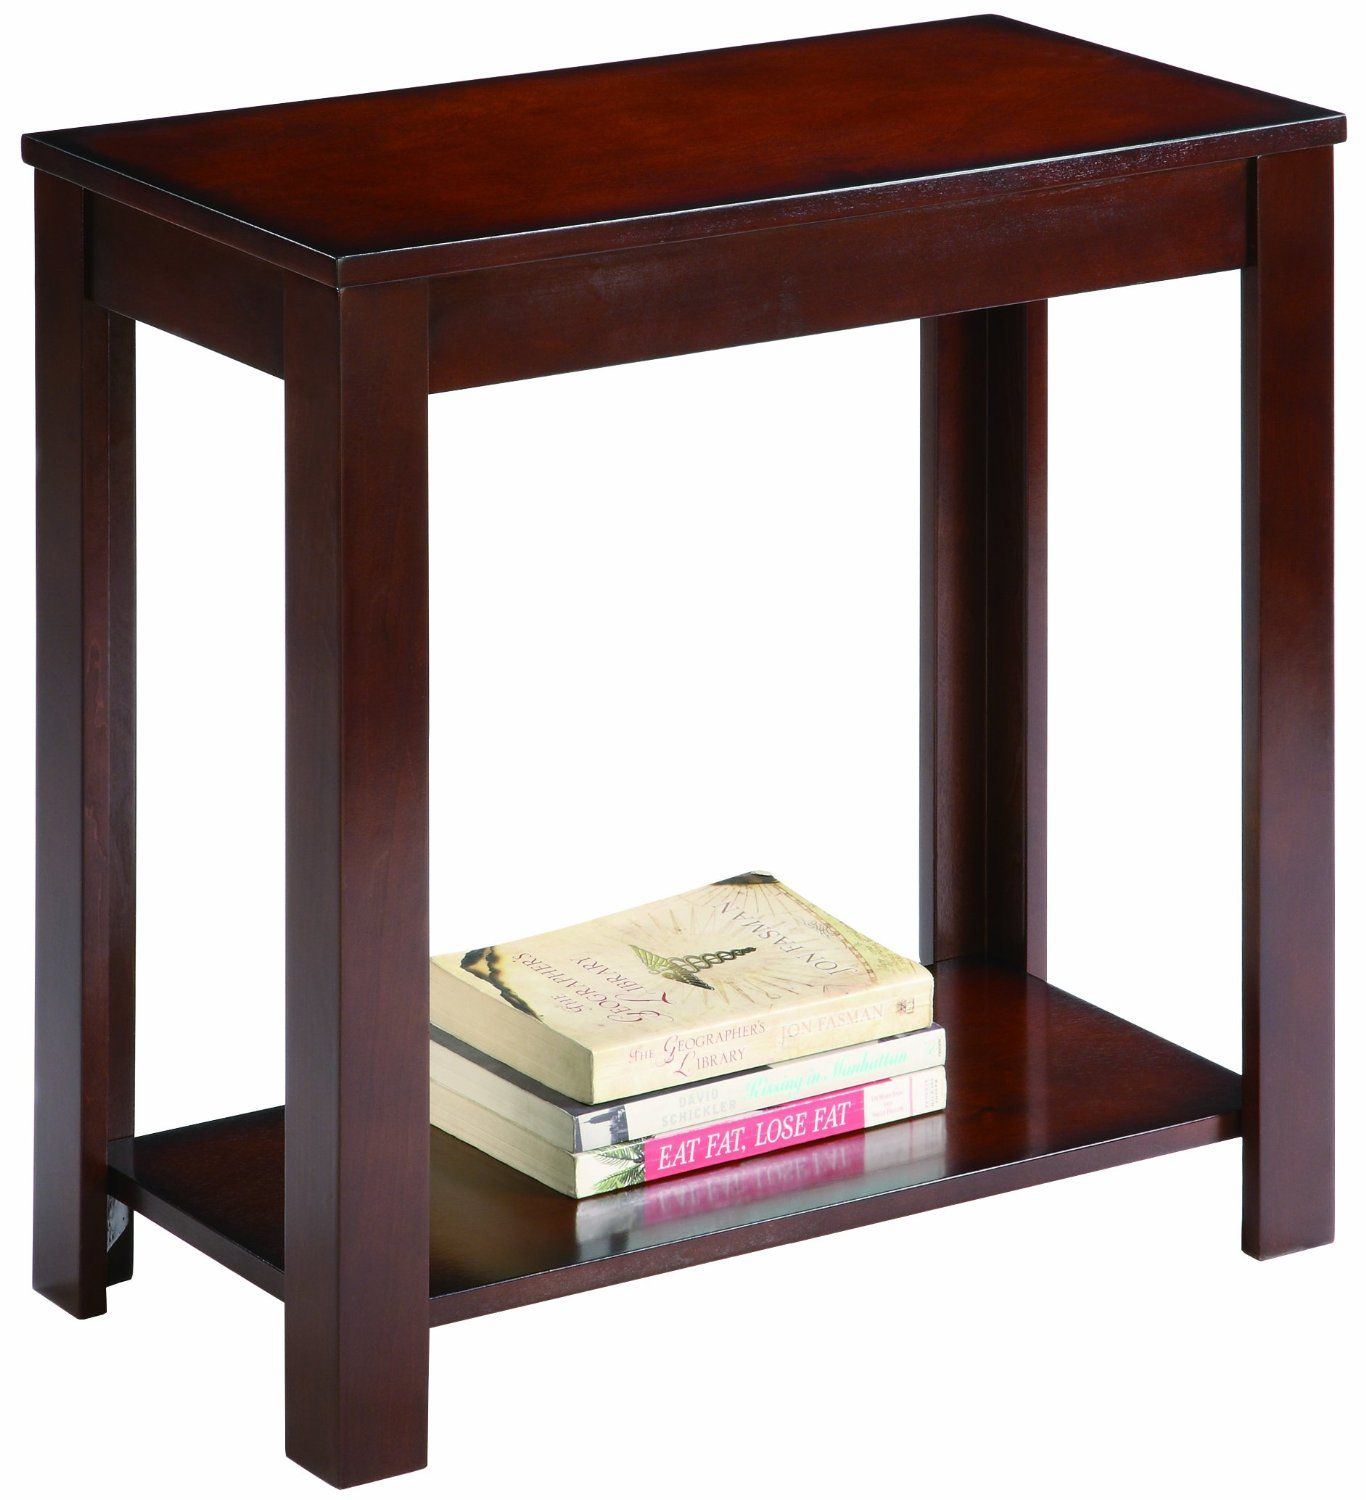 Add A Touch Of Cl To Your Dorm Room Or Bedroom With This Espresso Side Table